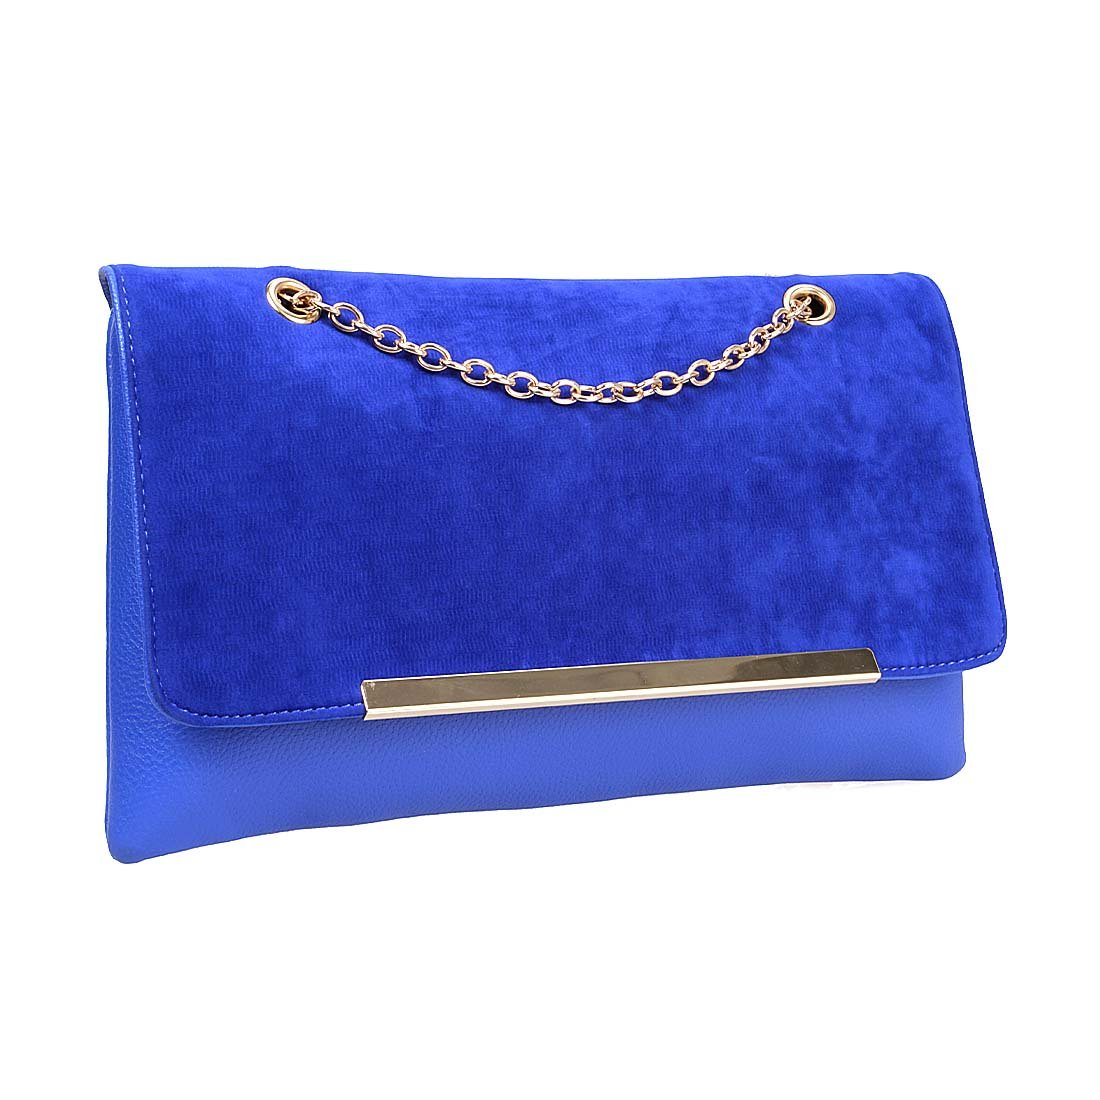 BMC Cute Navy Blue Faux Suede Leather Gold Metal Chain Accent Envelope Style Clutch Handbag